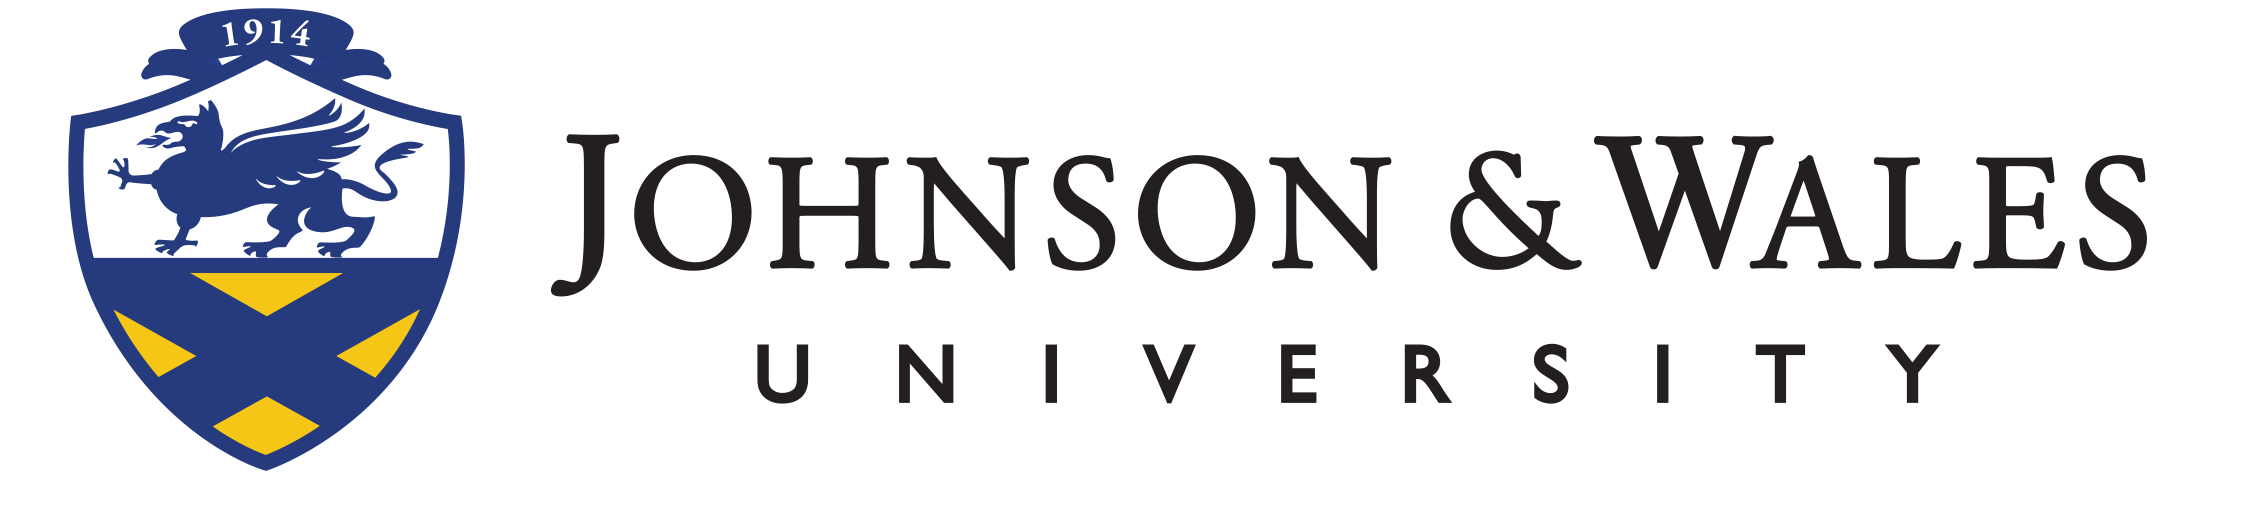 Johnson & Wales Uni